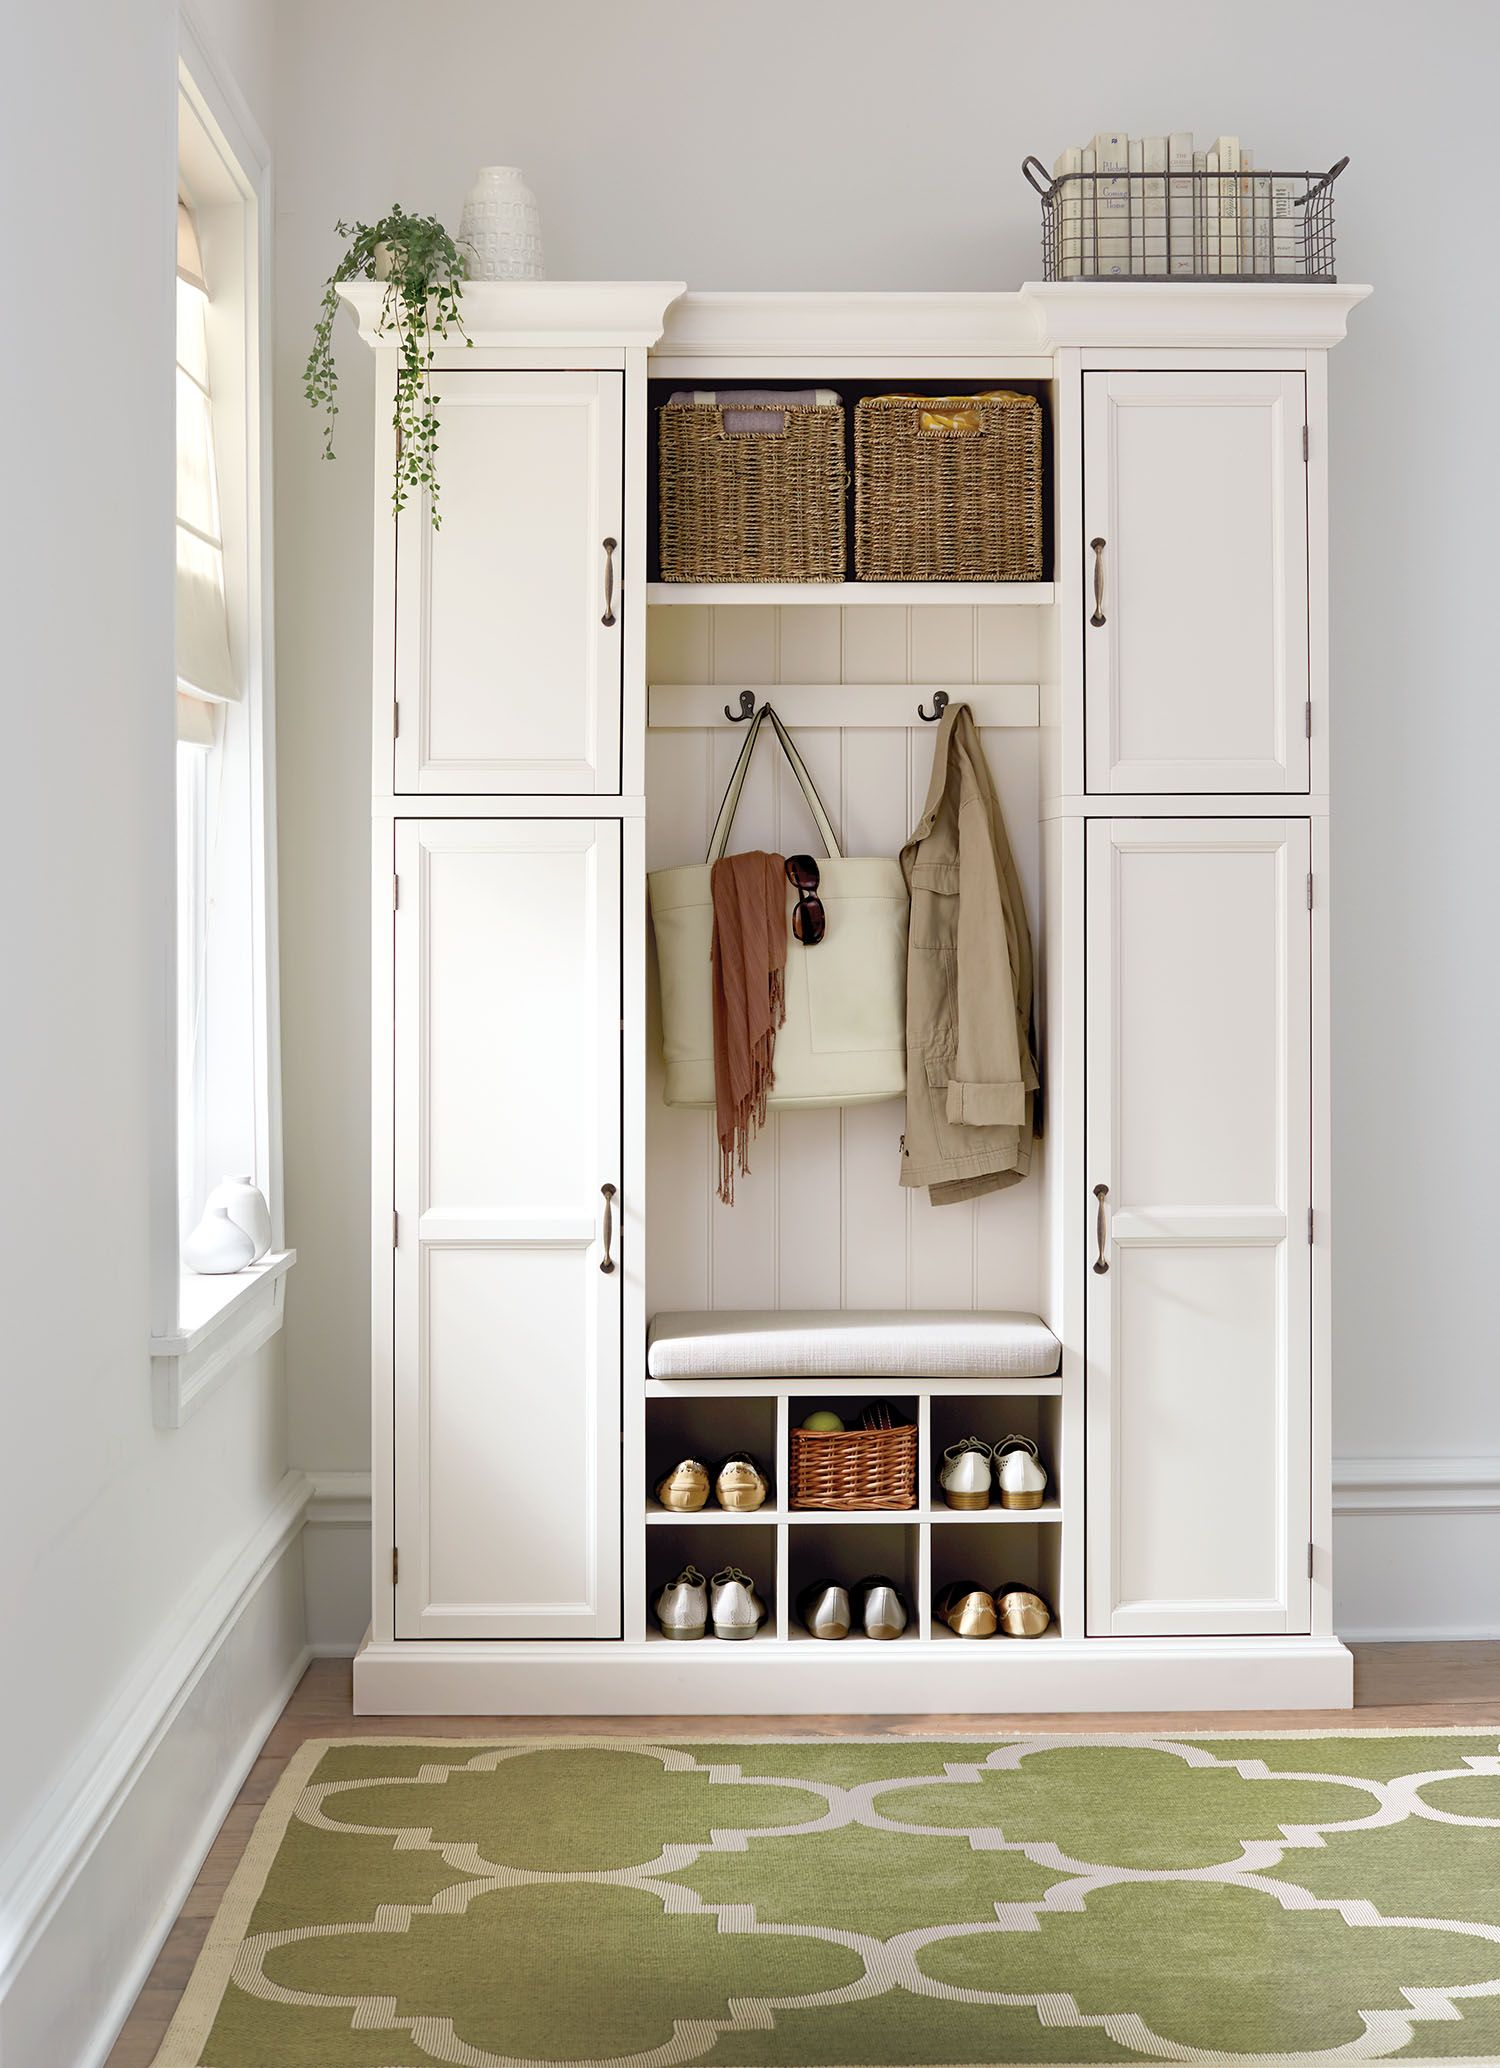 Delicieux Create Storage Space Where There Isnu0027t Any. This All In One Mudroom Piece  Is Ideal For Entryways That Lack Coat Closets Or For Mudrooms.  #organizewithhdc